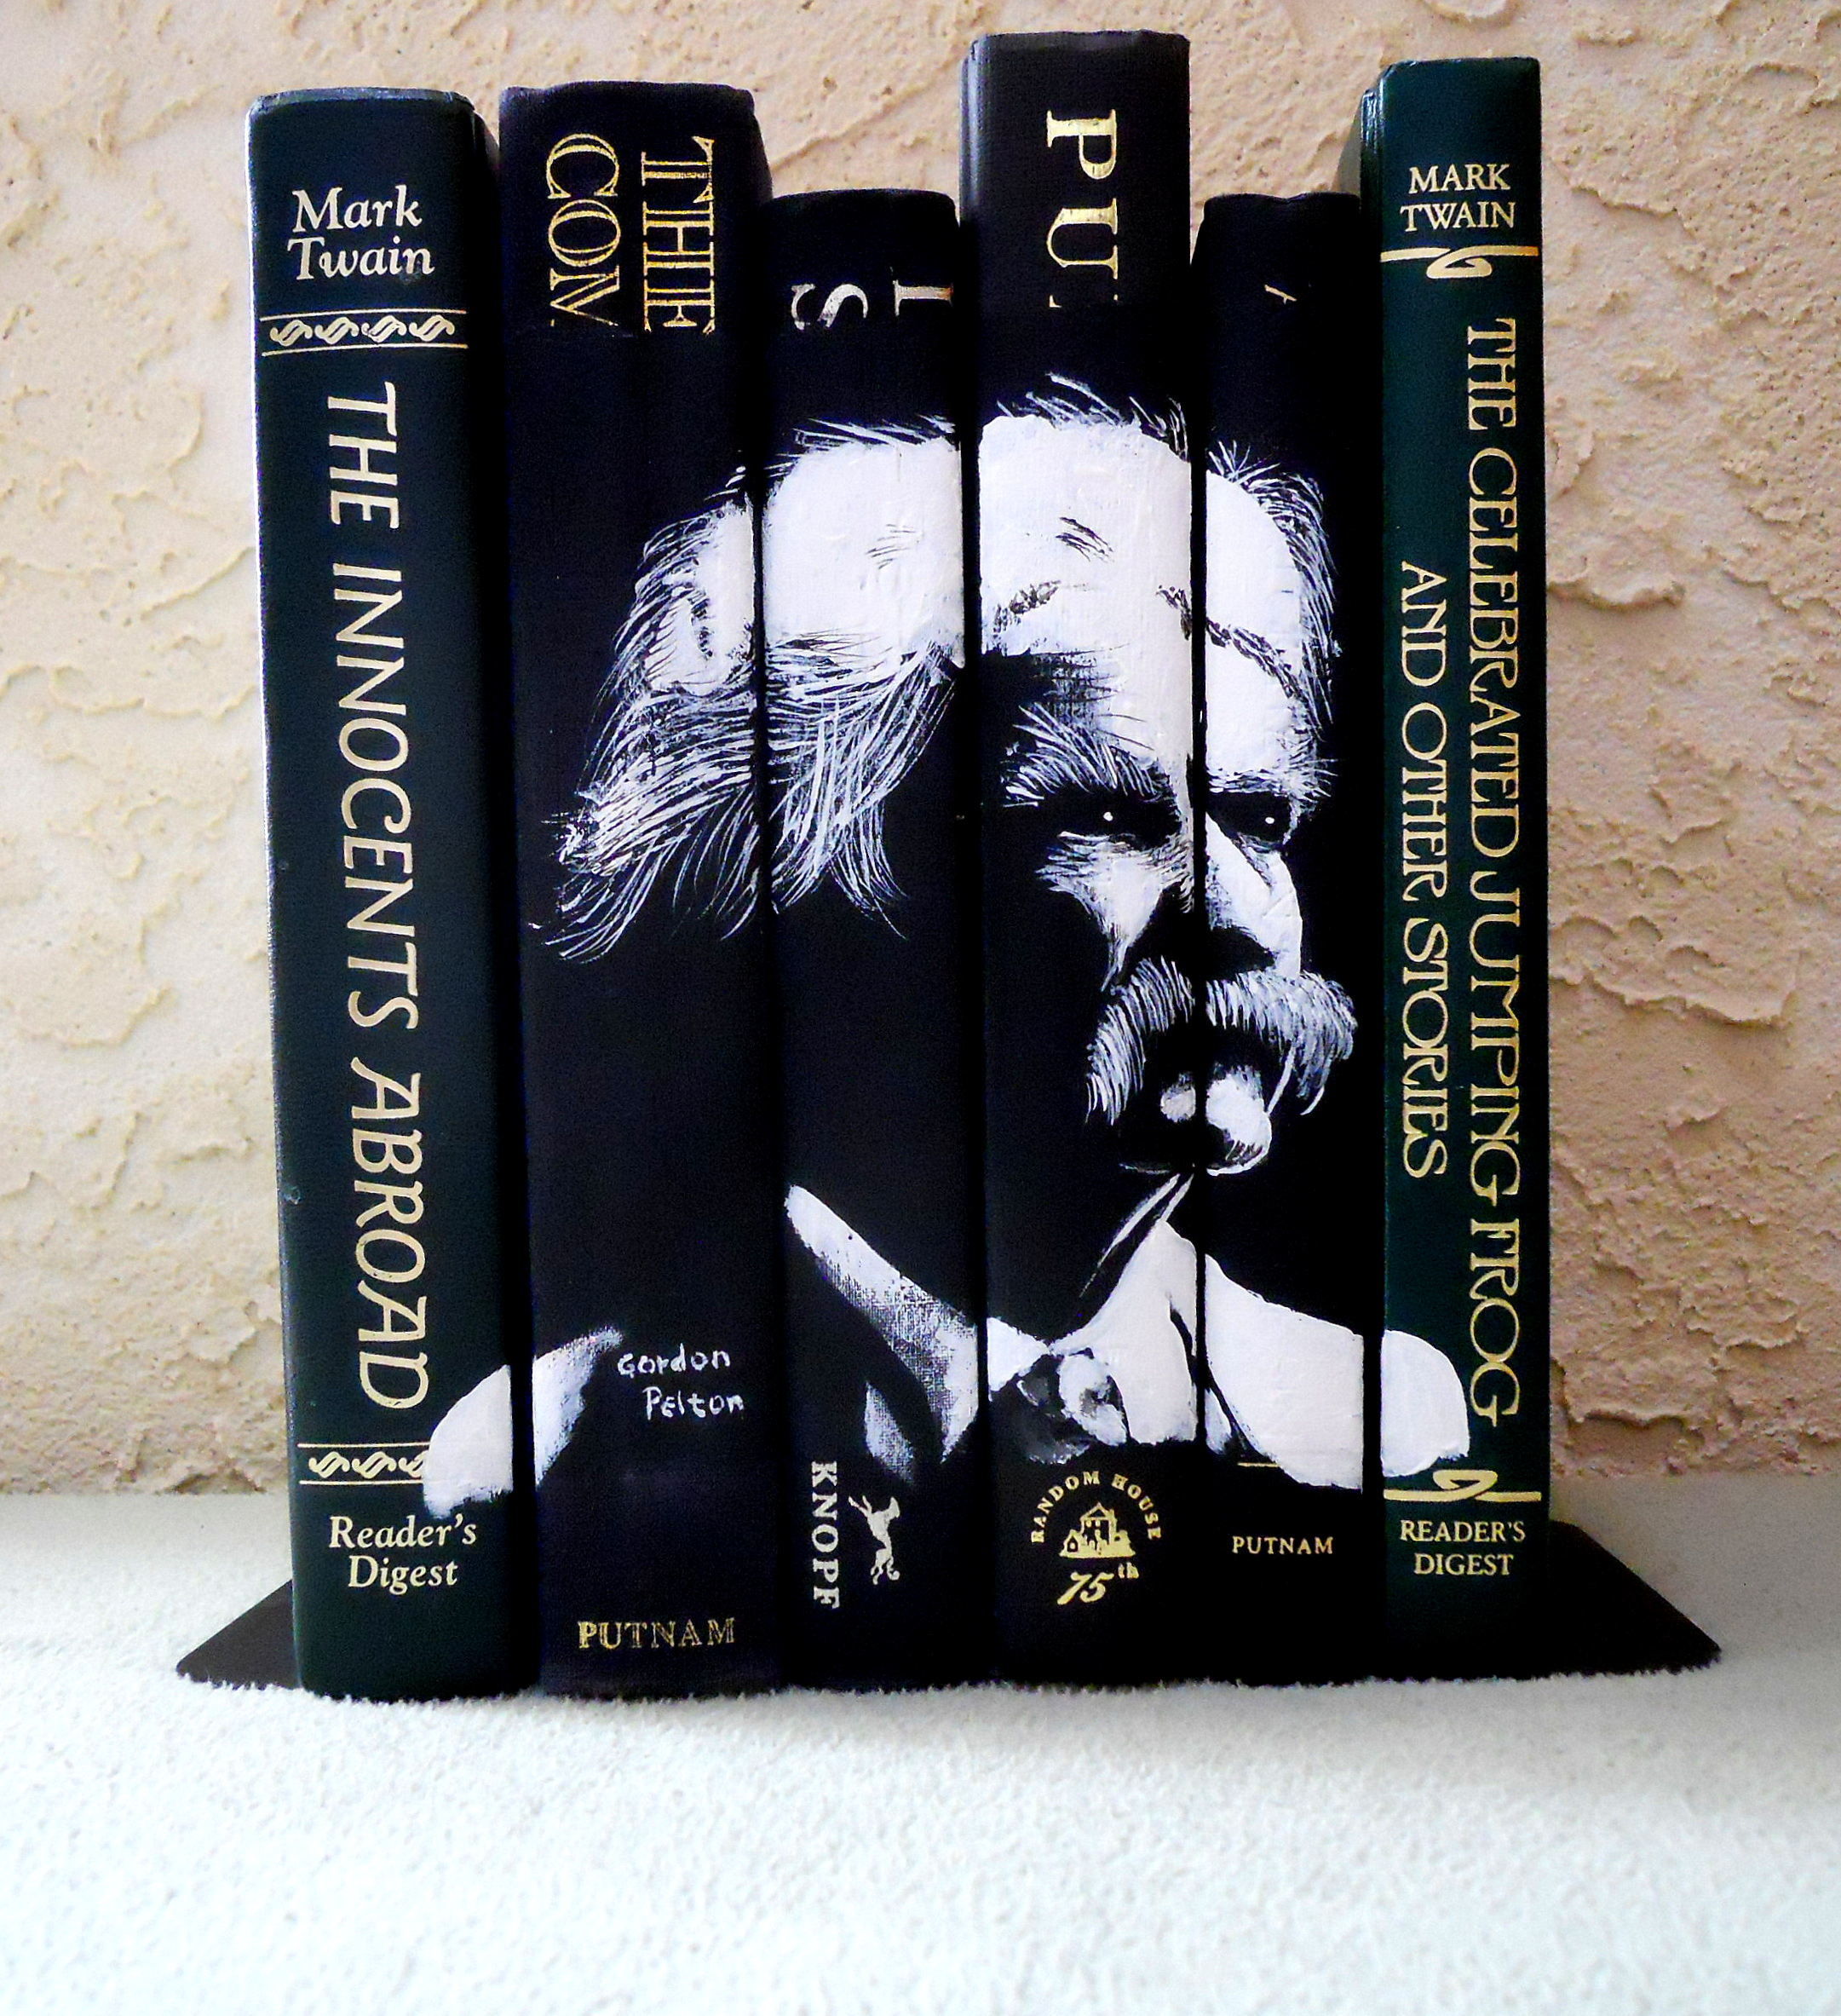 Twain on Book Spines 2.JPG